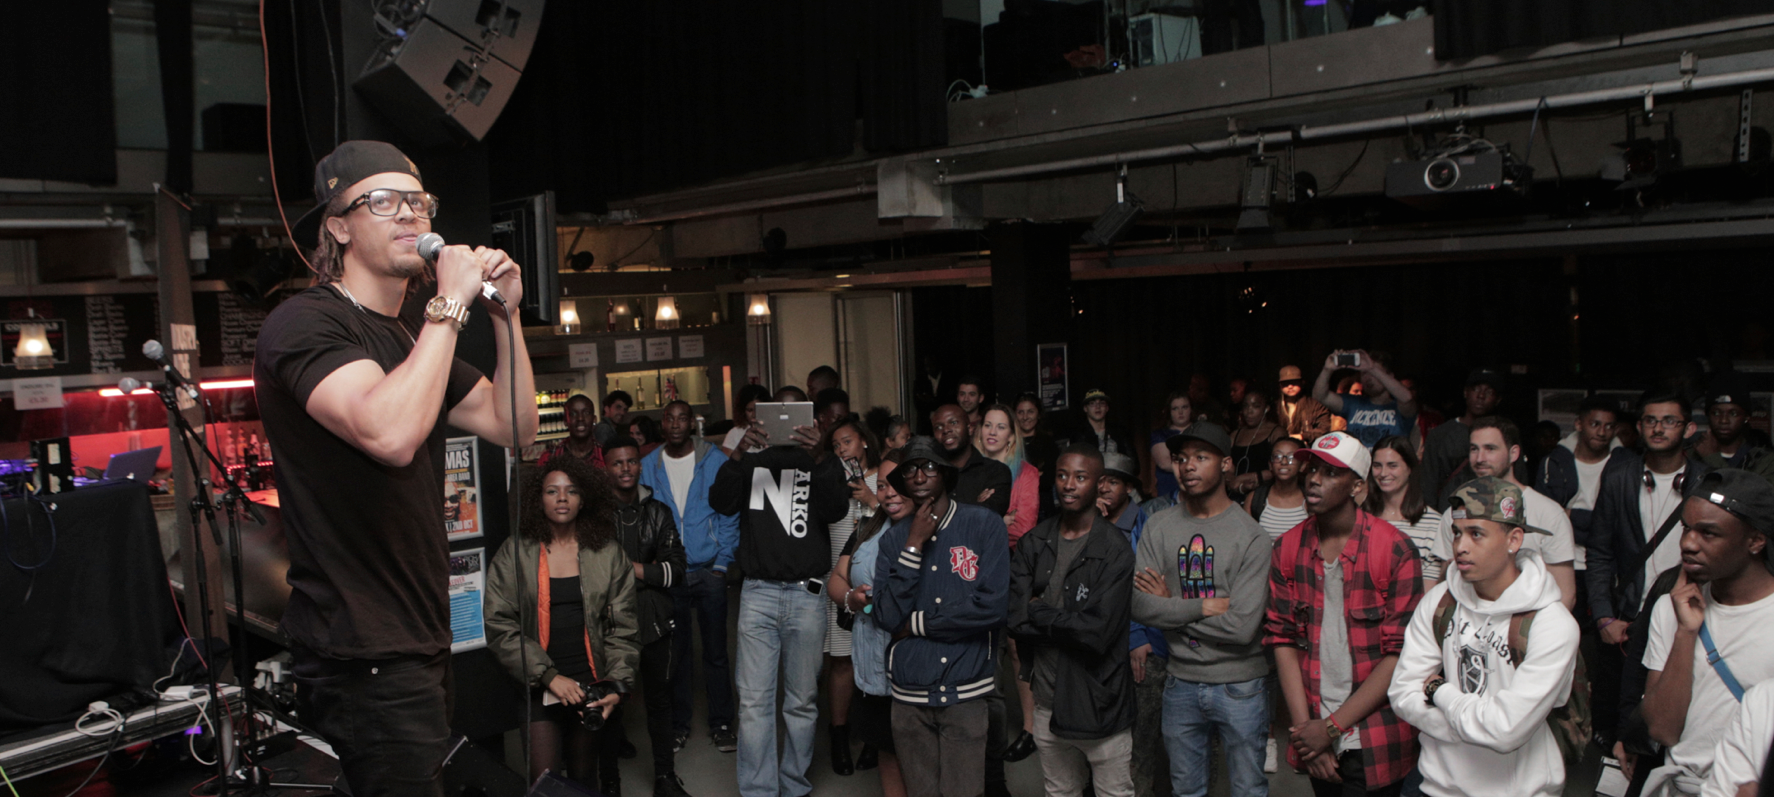 REVIEW: #IITSPIRATION x RICH MIX YOUTH TAKEOVER: OPENING PARTY